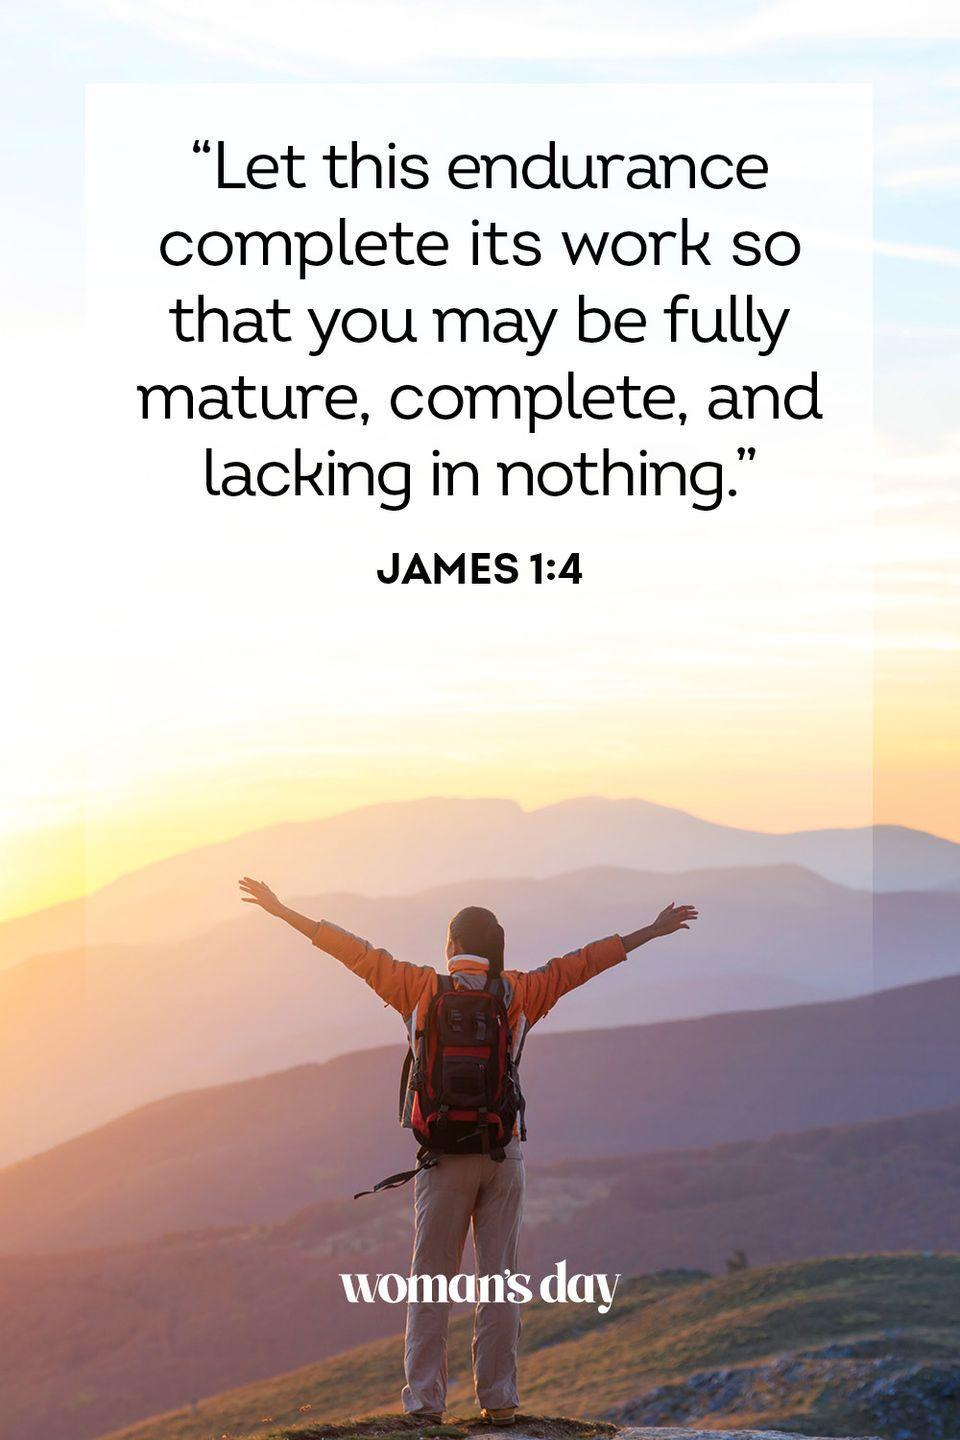 """<p>""""Let this endurance complete its work so that you may be fully mature, complete, and lacking in nothing."""" — James 1:4</p><p><strong>THE GOOD NEWS</strong>: Continuing to endure through the tough times is what allows you to develop into a fuller, more complete person.</p>"""